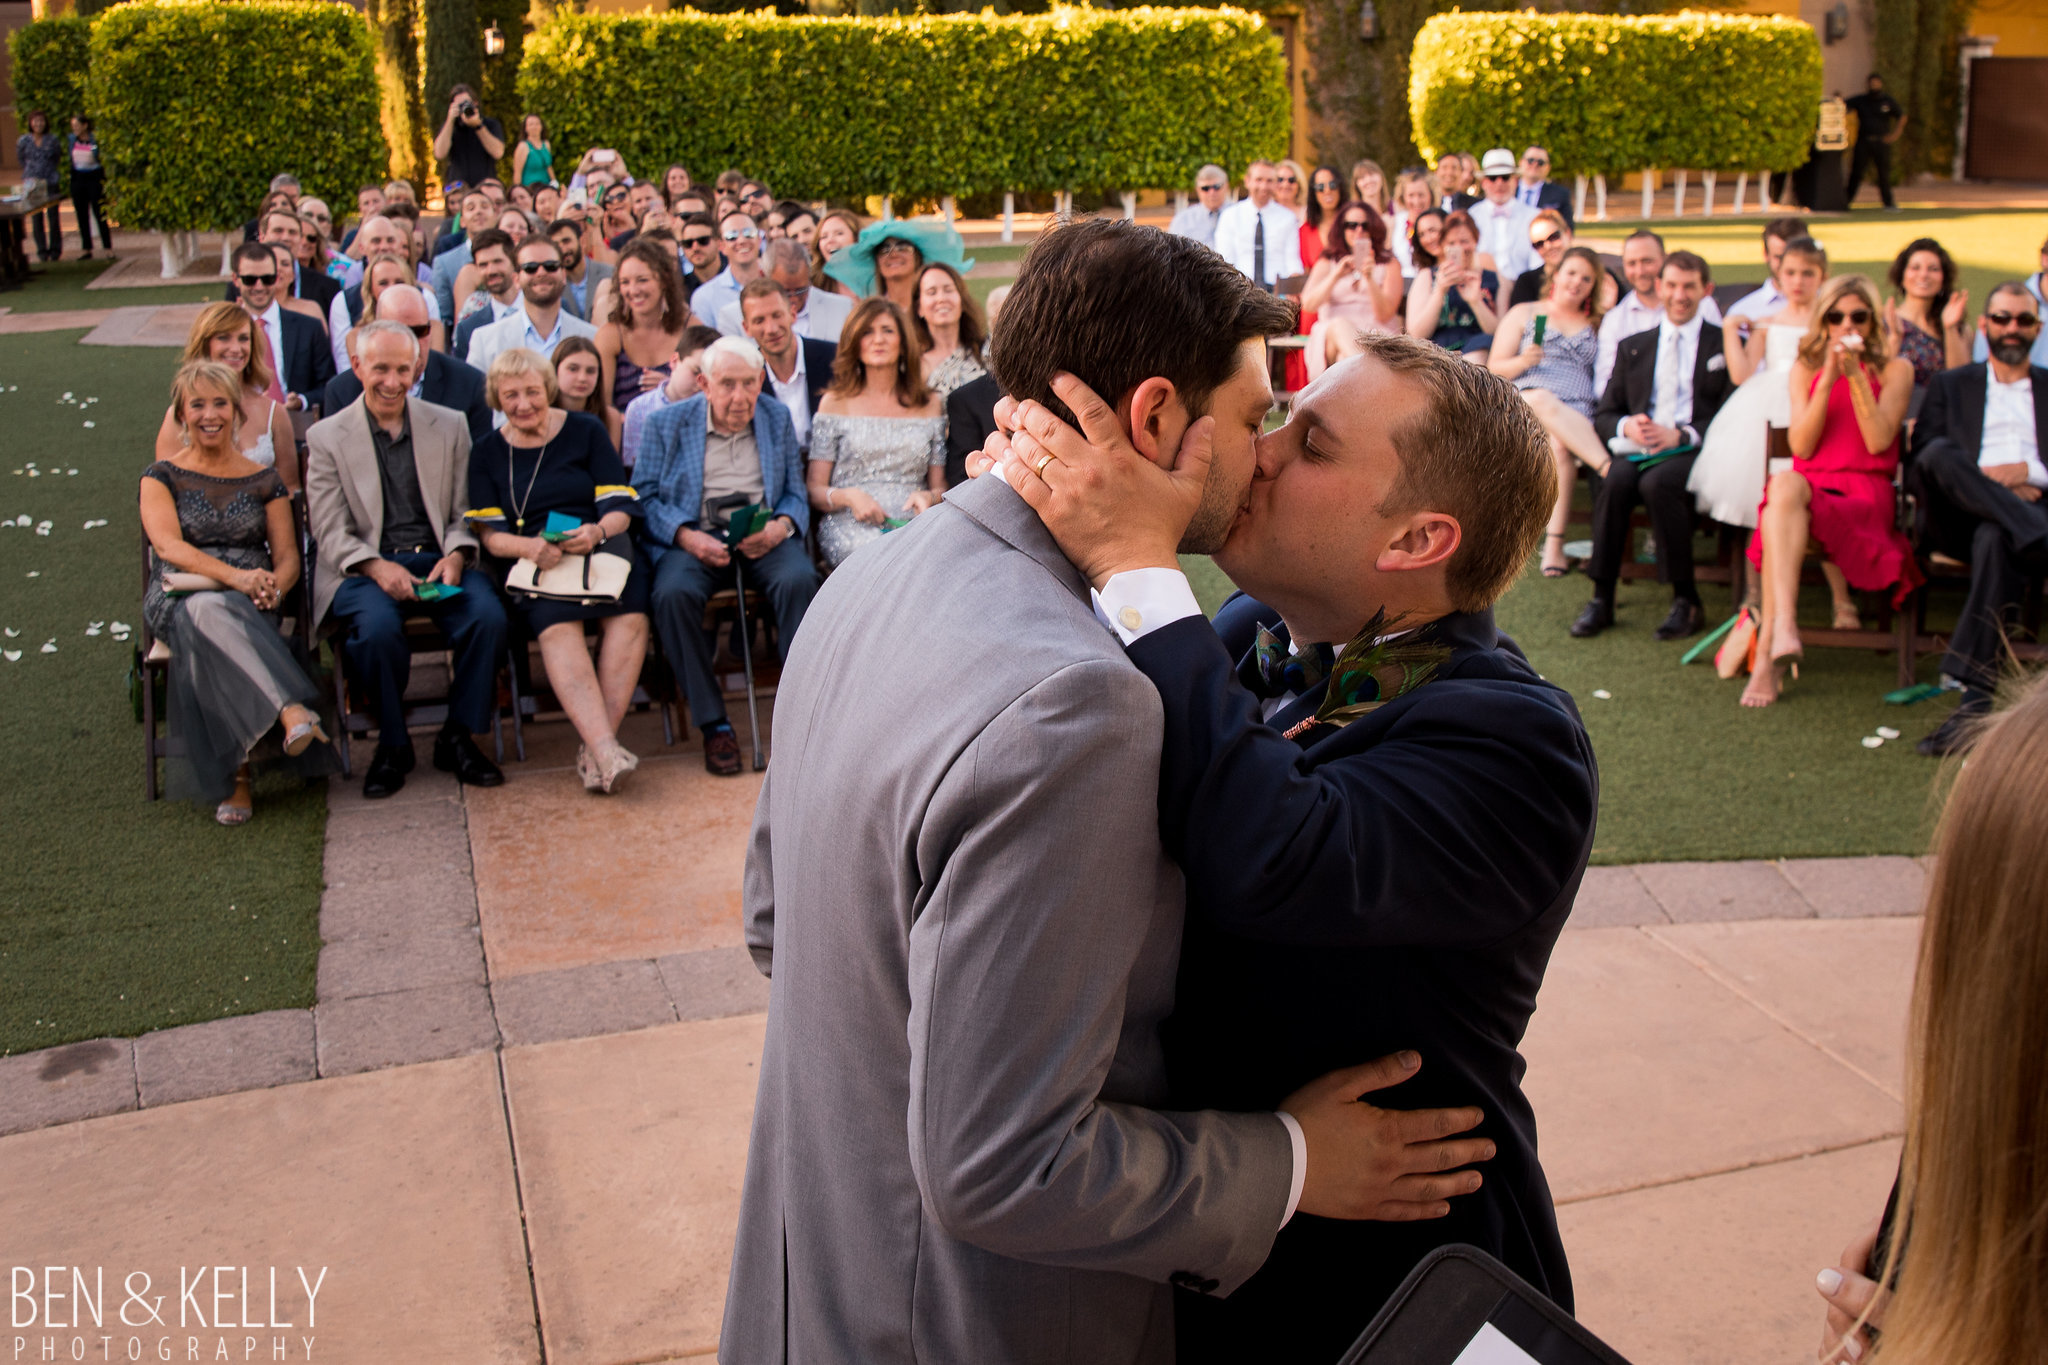 16 wedding kiss grooms kiss wedding ceremony seal the deal sealed with a kiss Life Design Events photo by Ben and Kelly Photography.jpg